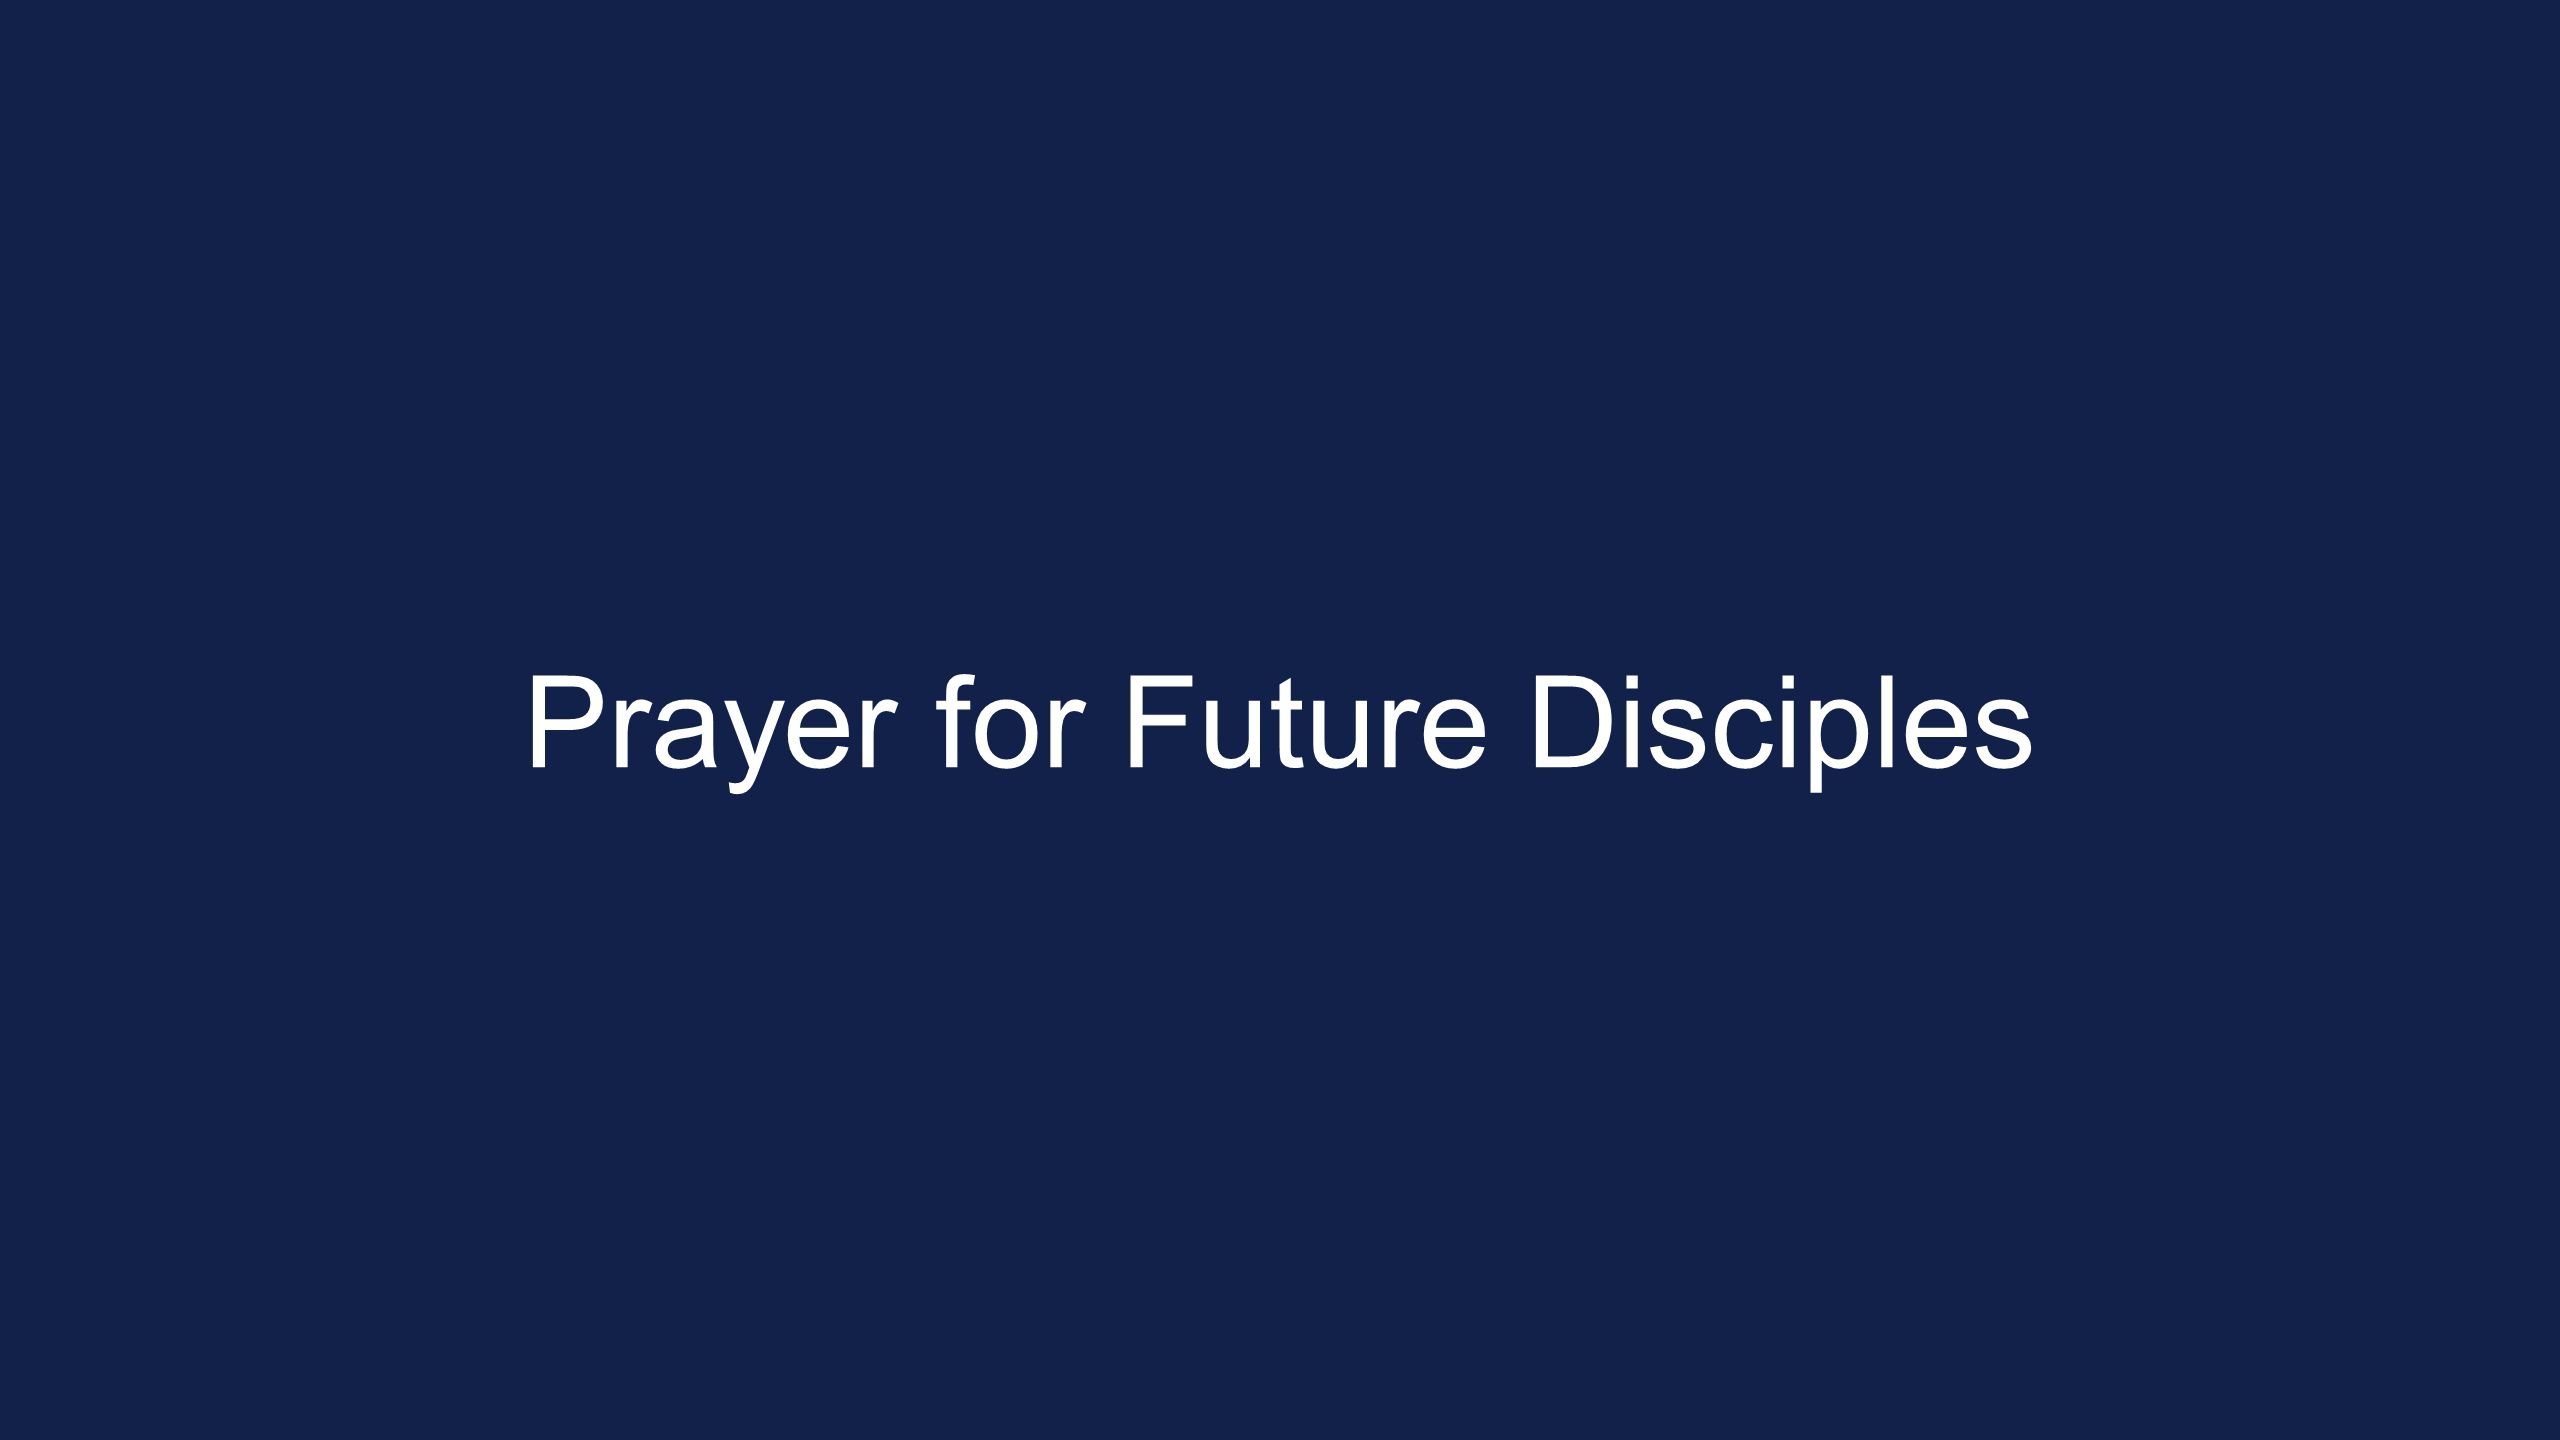 Prayer for Future Disciples